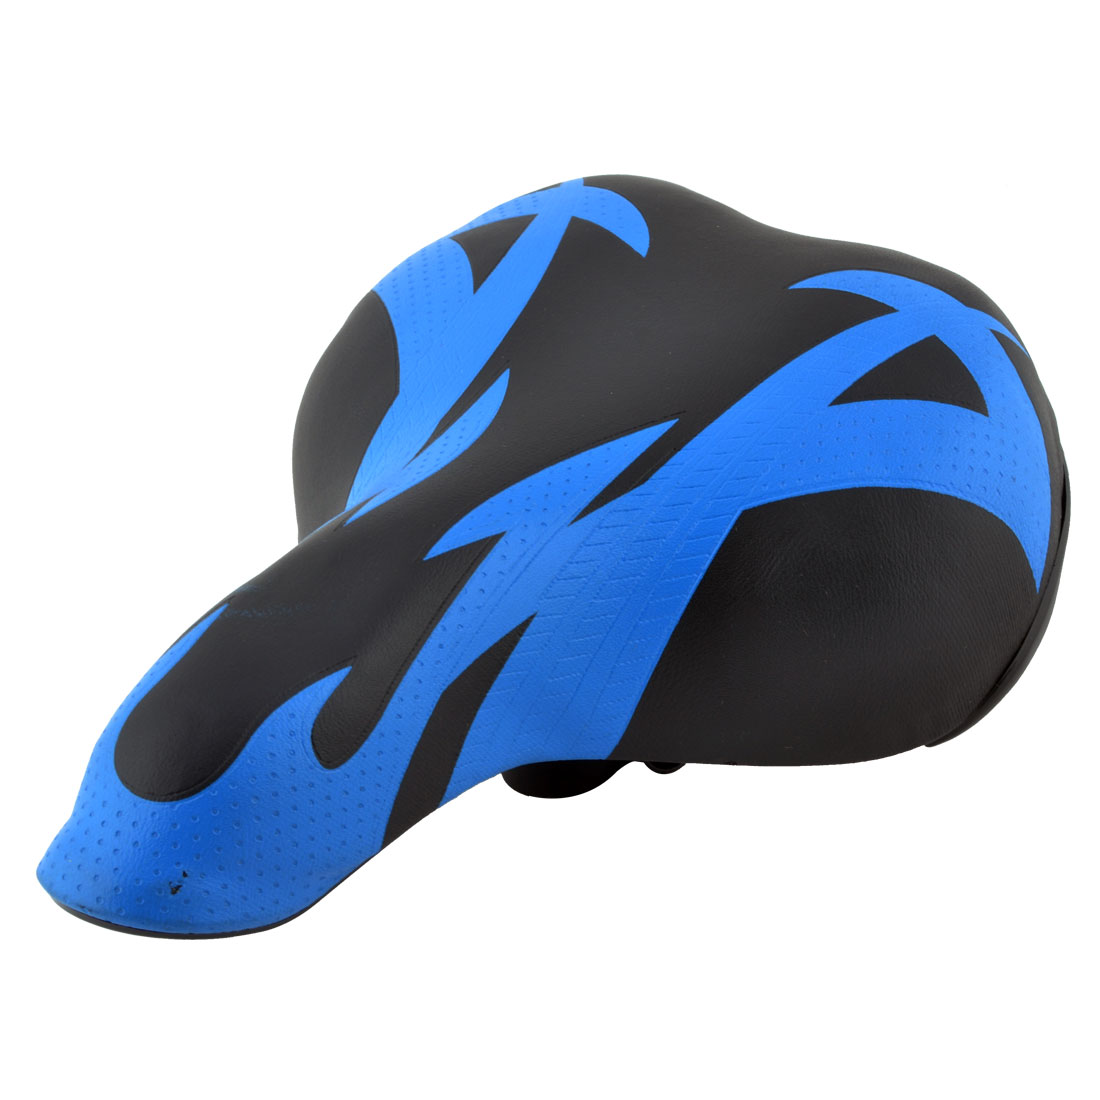 Mountain Bicycle Biking Accessories Faux Leather Blue Black Seat Saddle Cushion